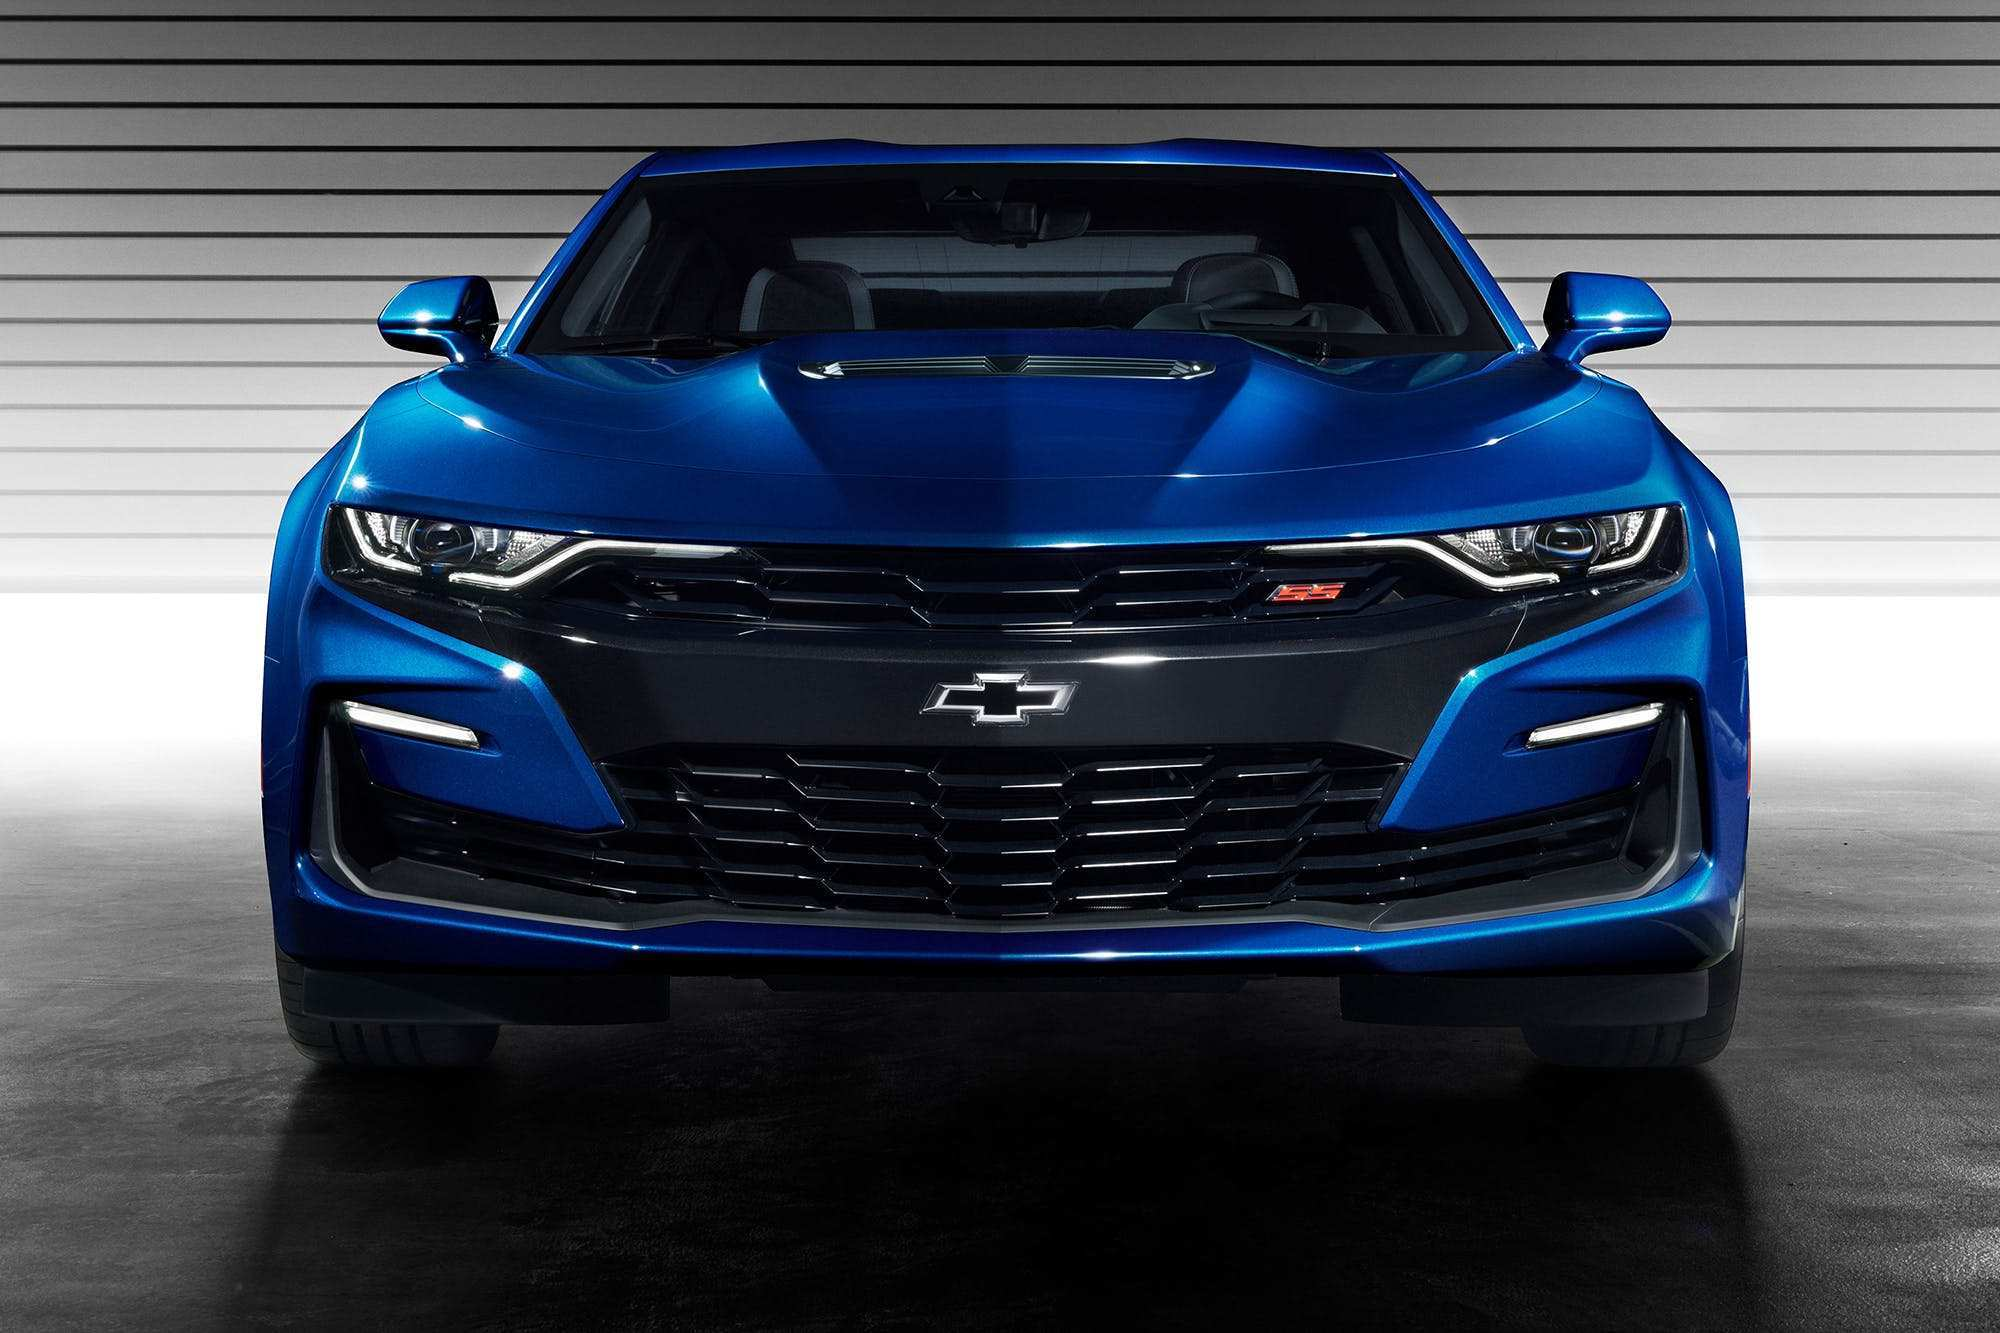 63 The 2020 Chevrolet Camaro Zl1 Concept